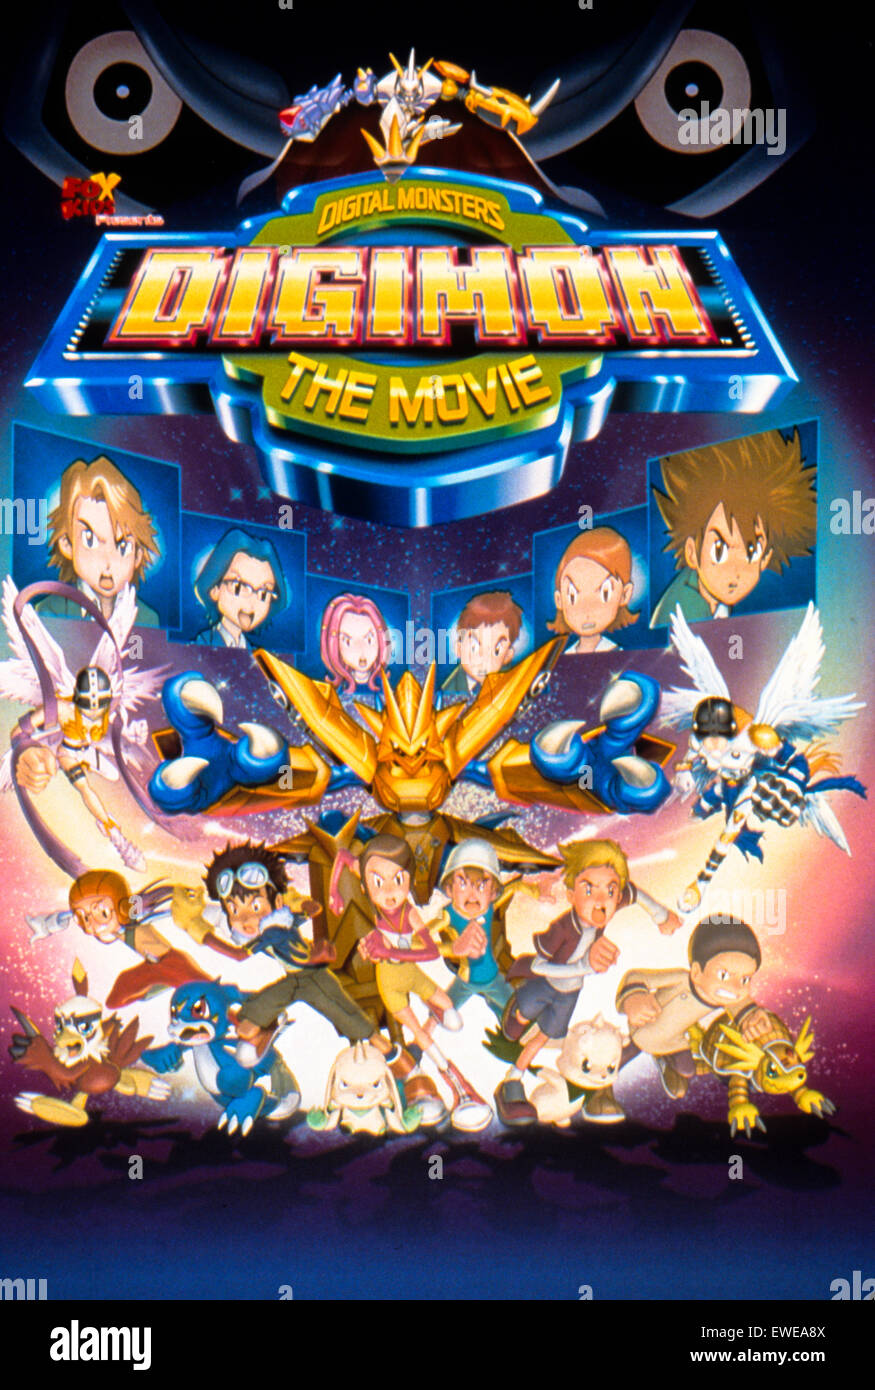 digimon the movie - Stock Image